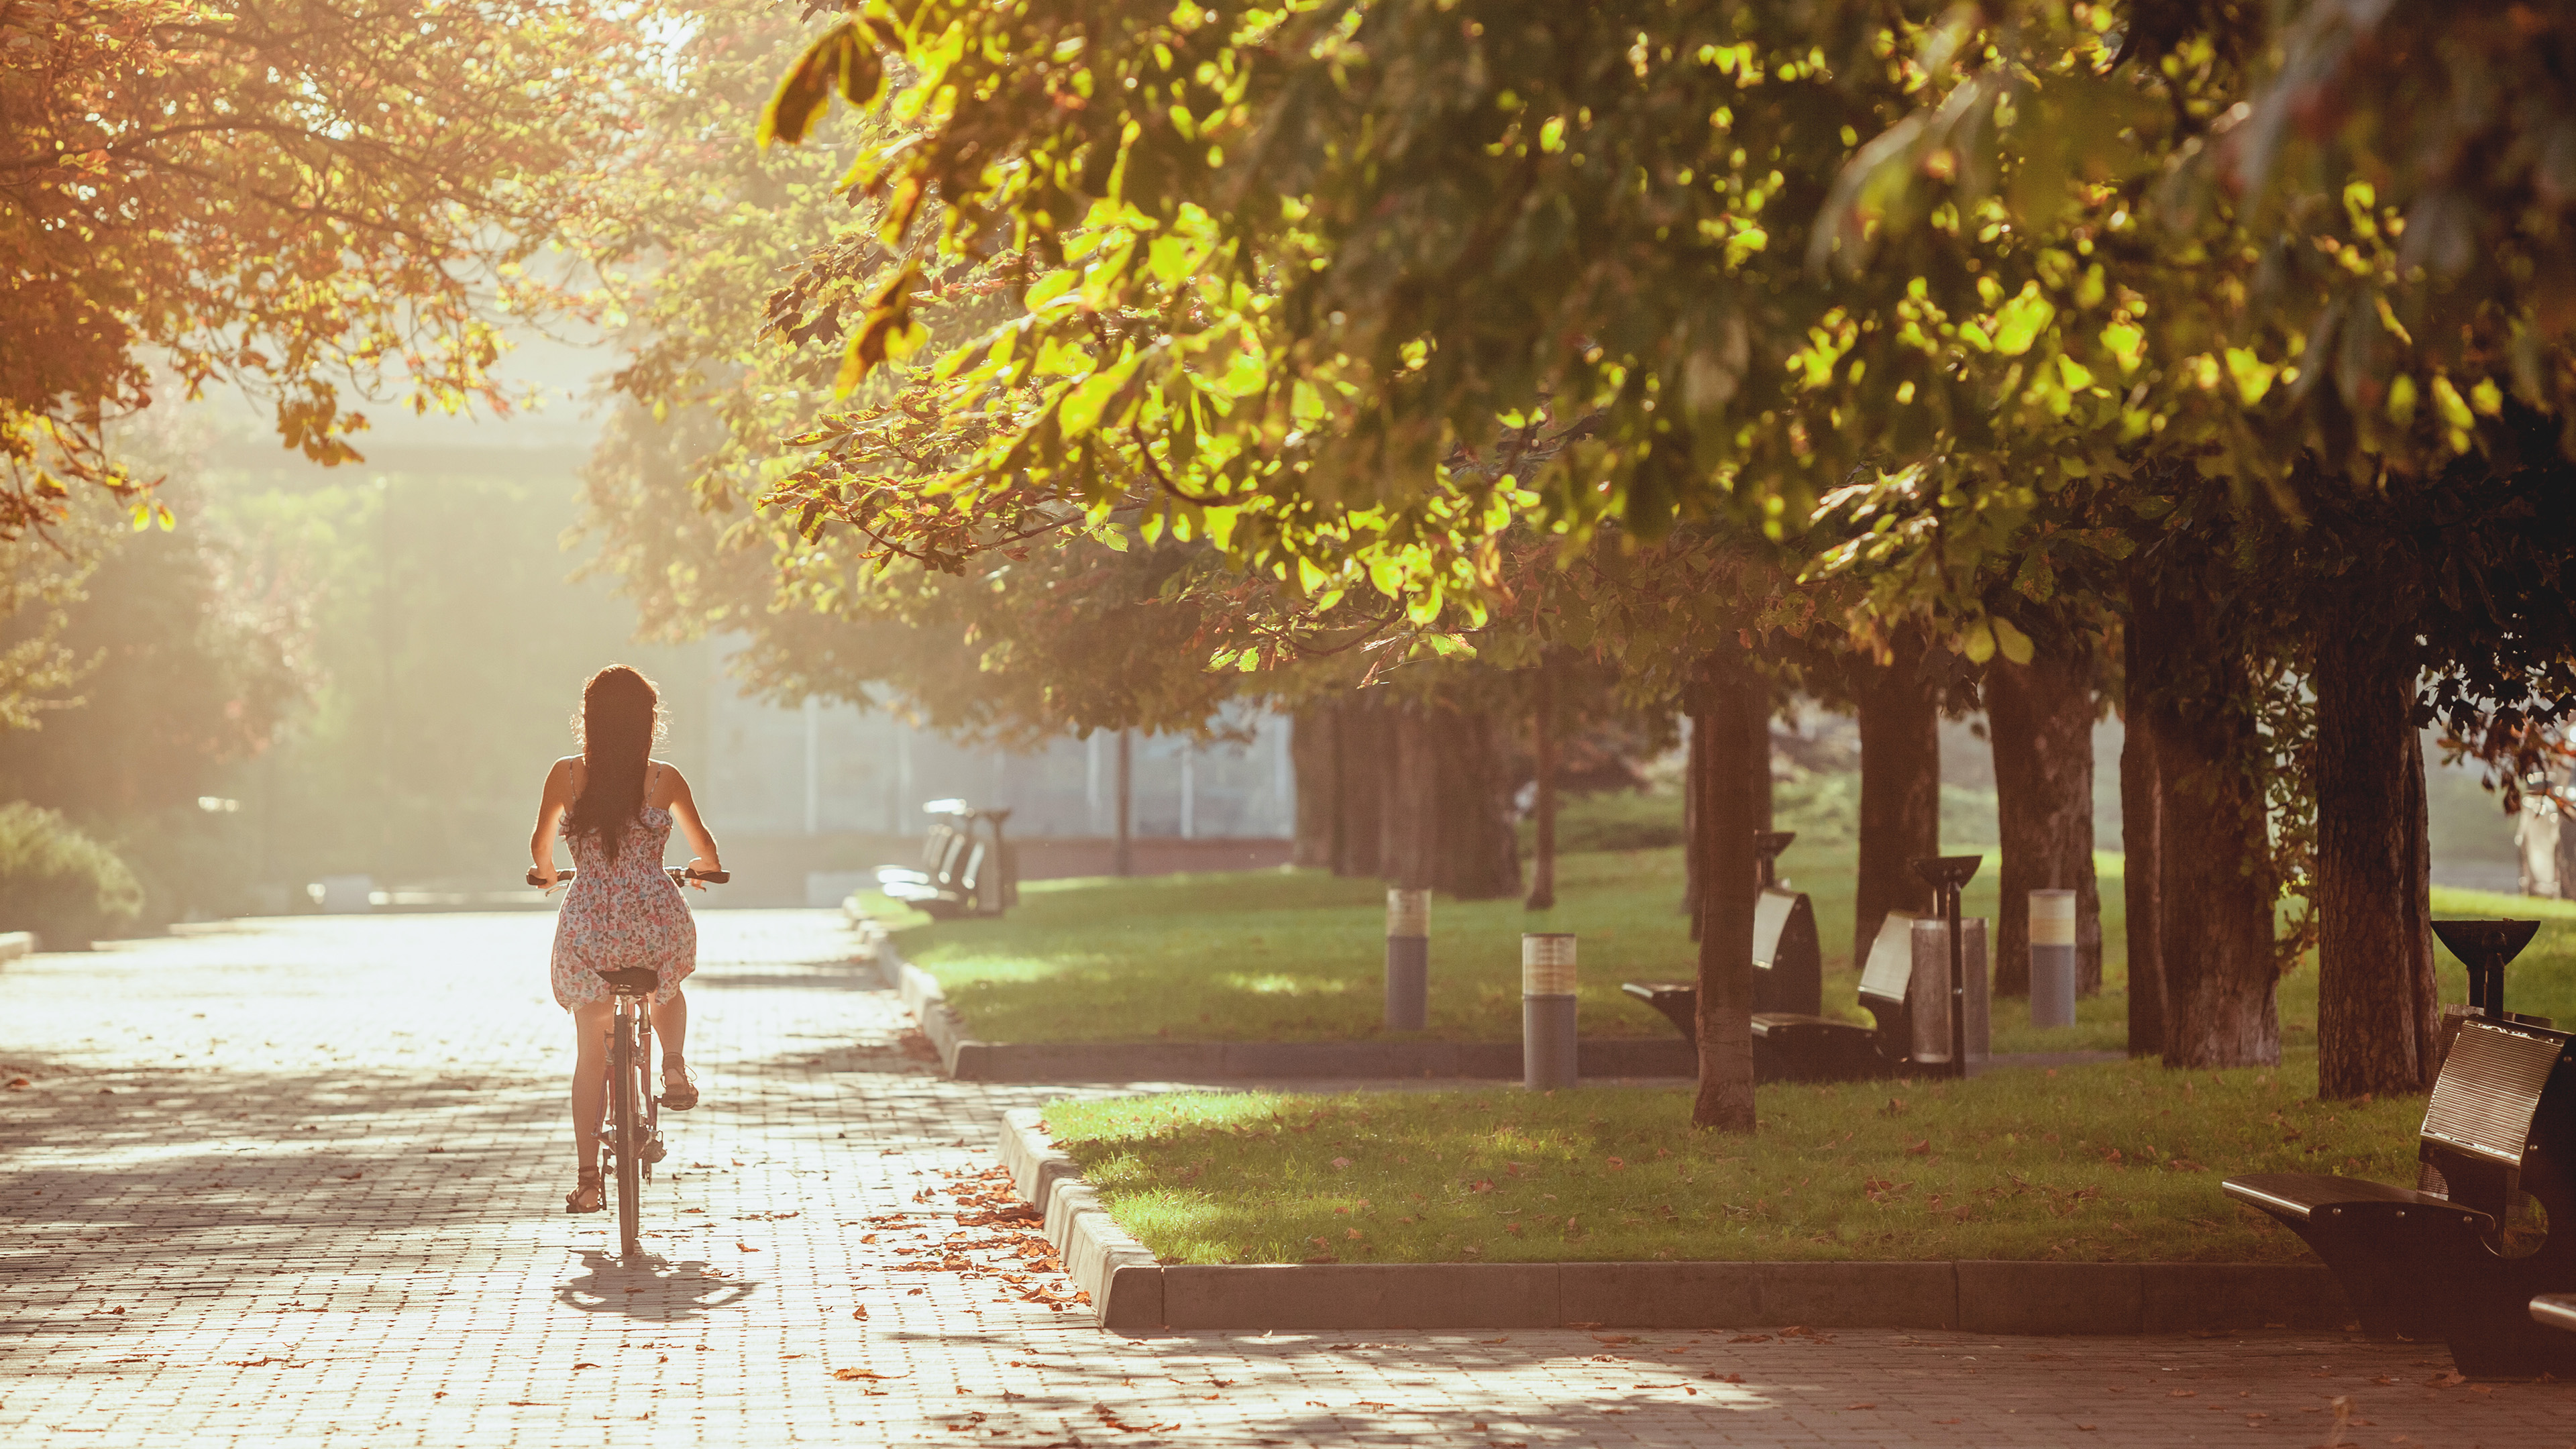 The young girl with bicycle in park in summer